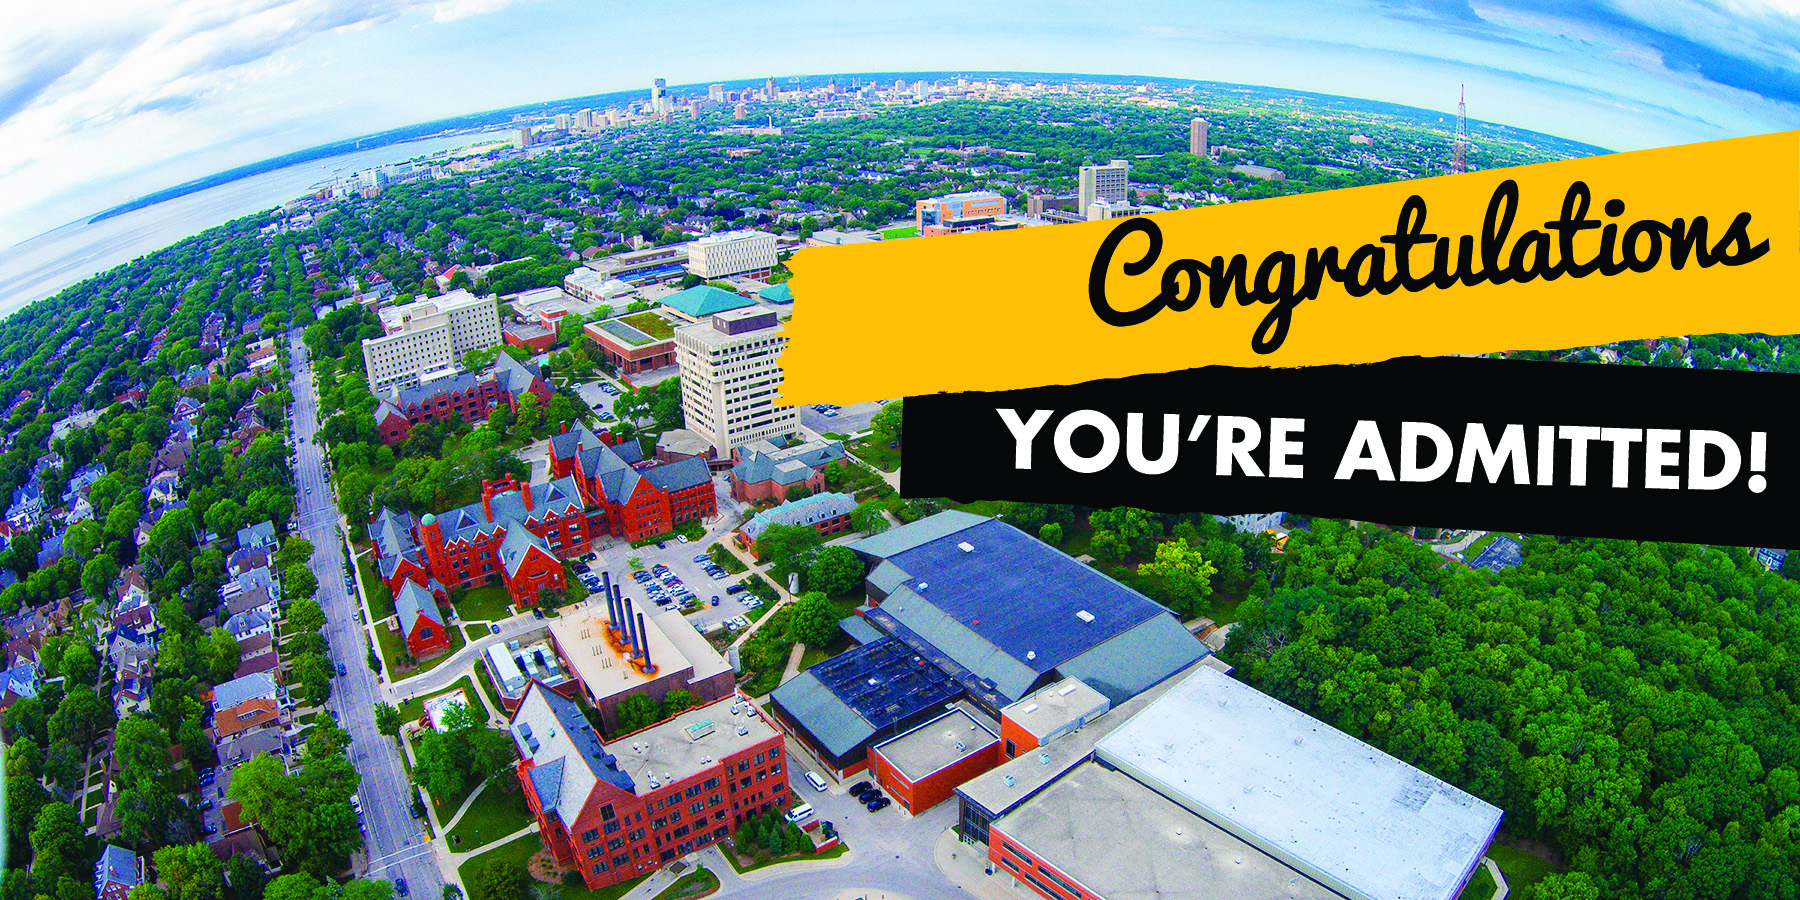 Congratulations, your admitted!